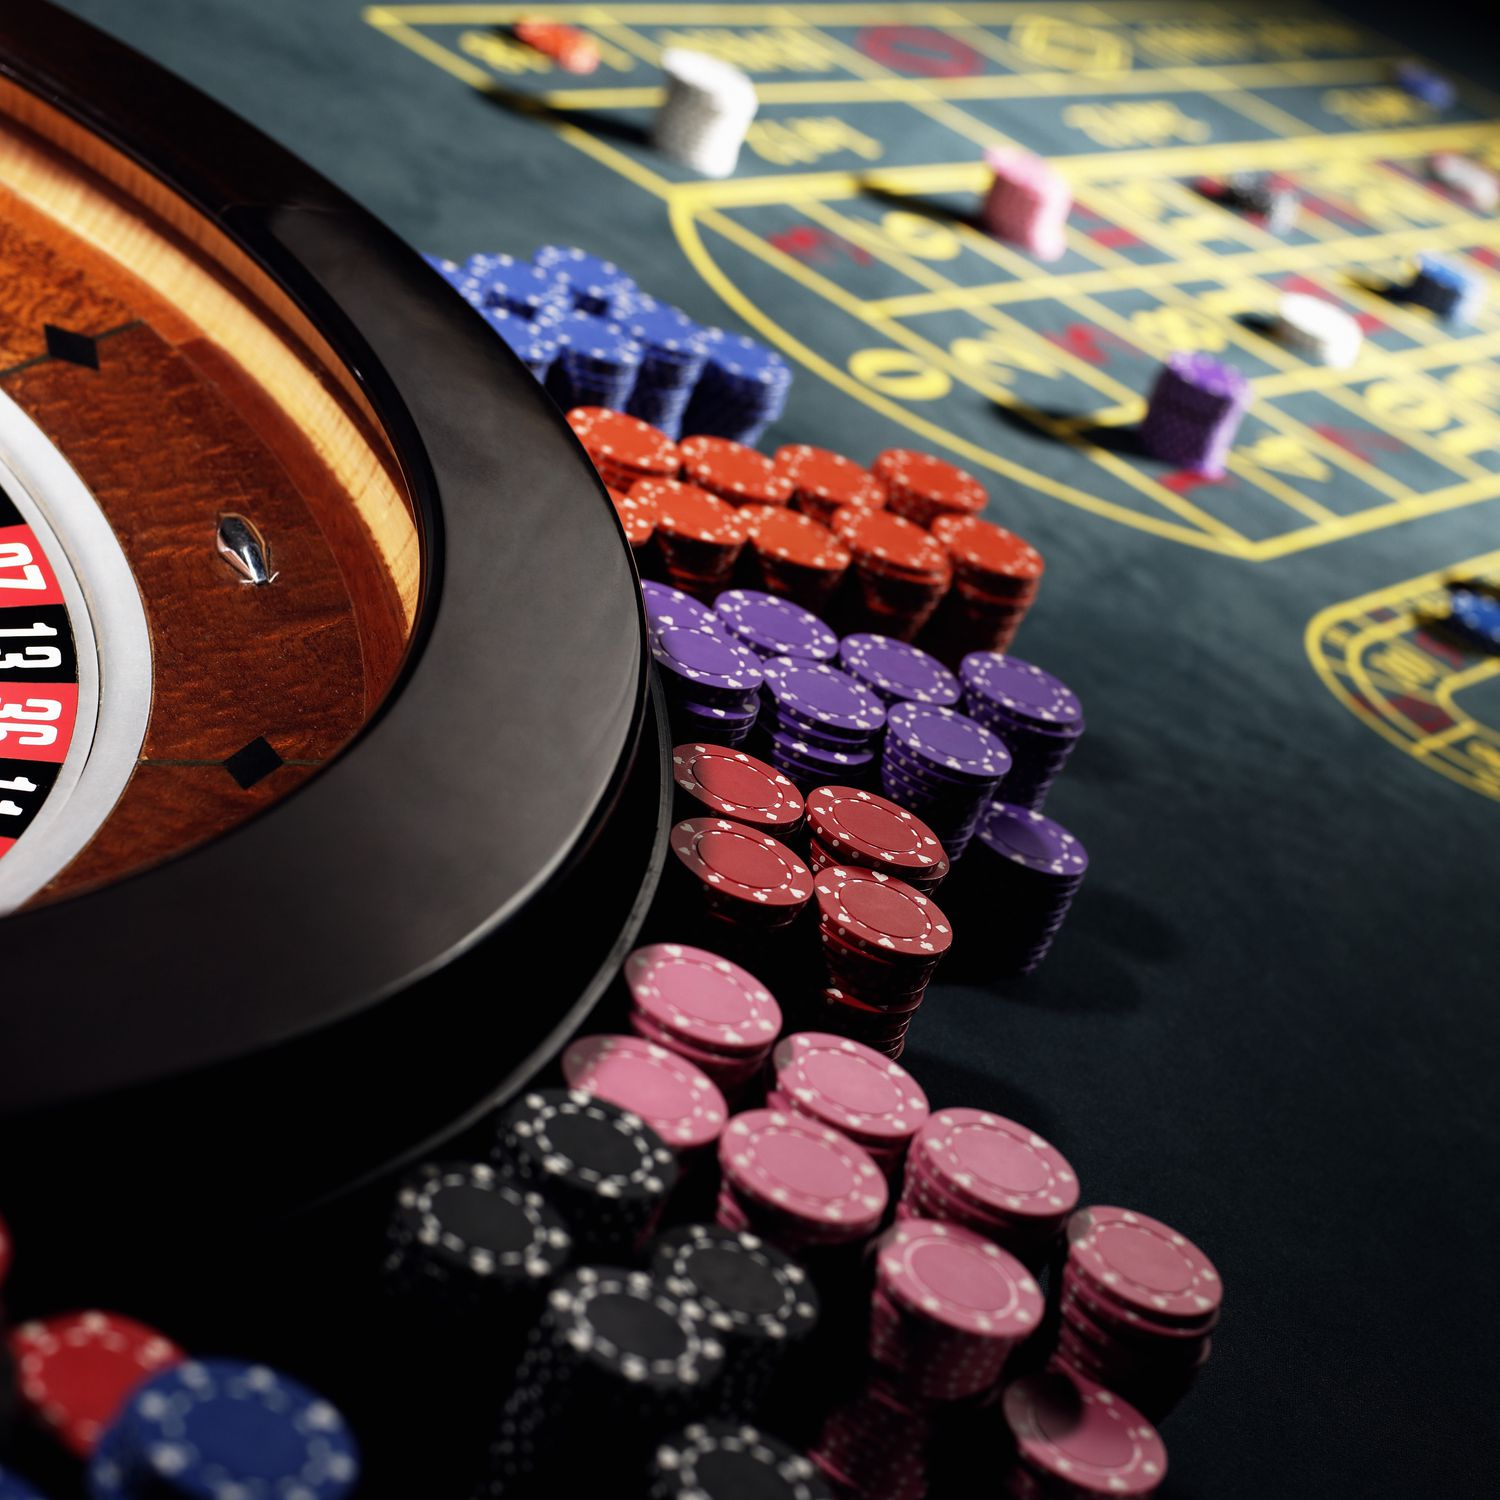 Which Casino Games Have The Best And Worst Odds